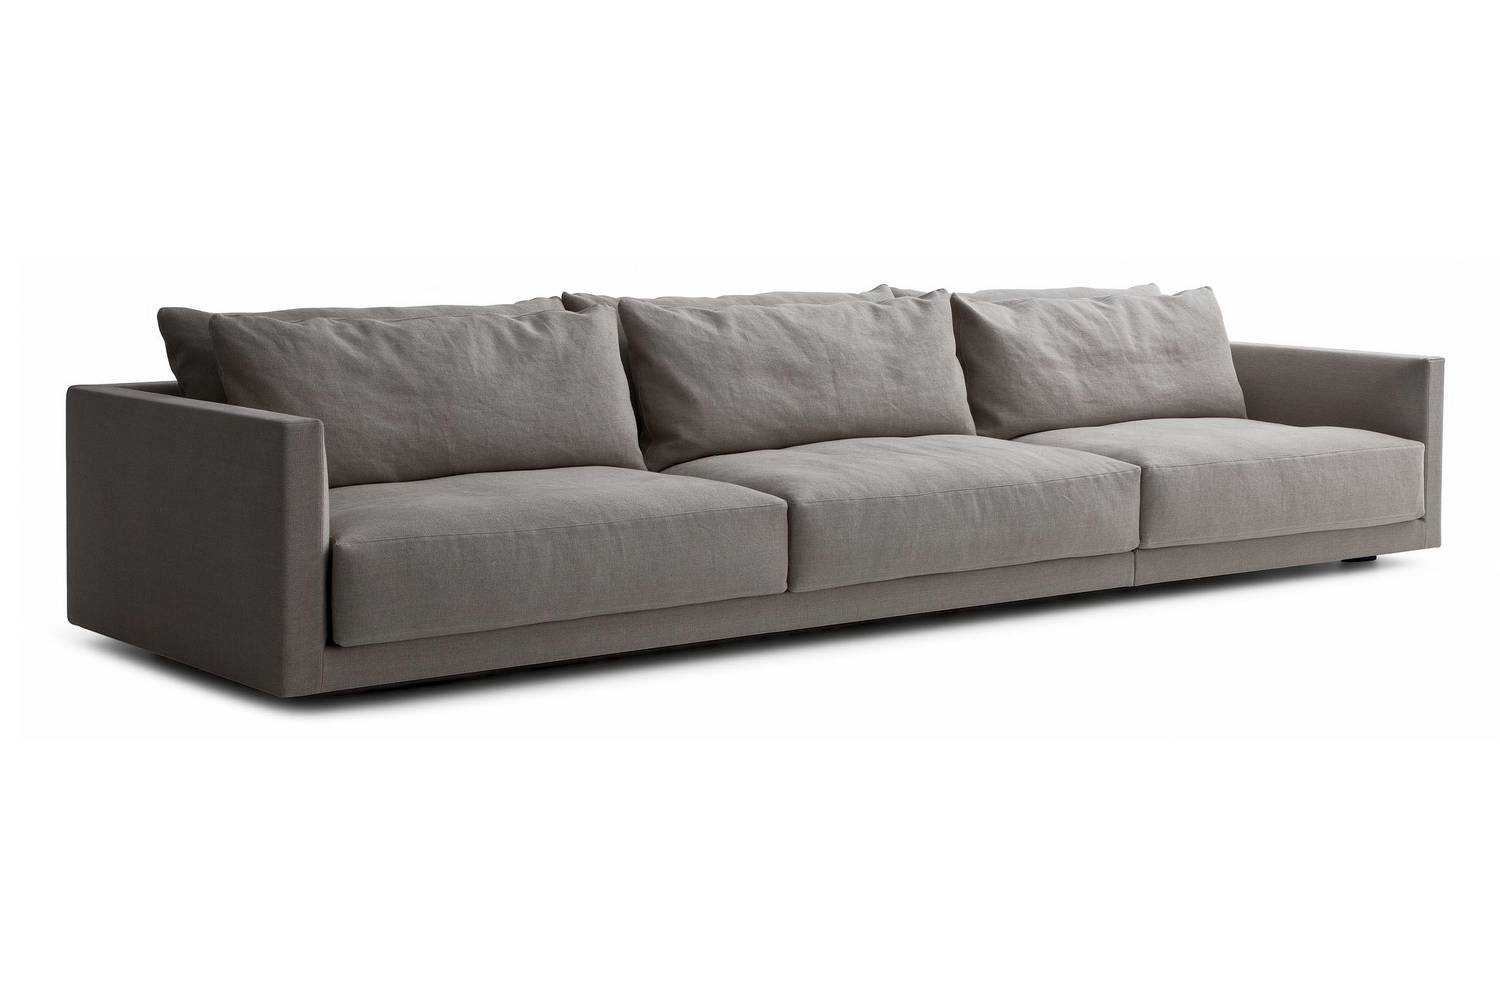 j m paquet sofa memory foam bed mattress queen bristol by massaud for poliform